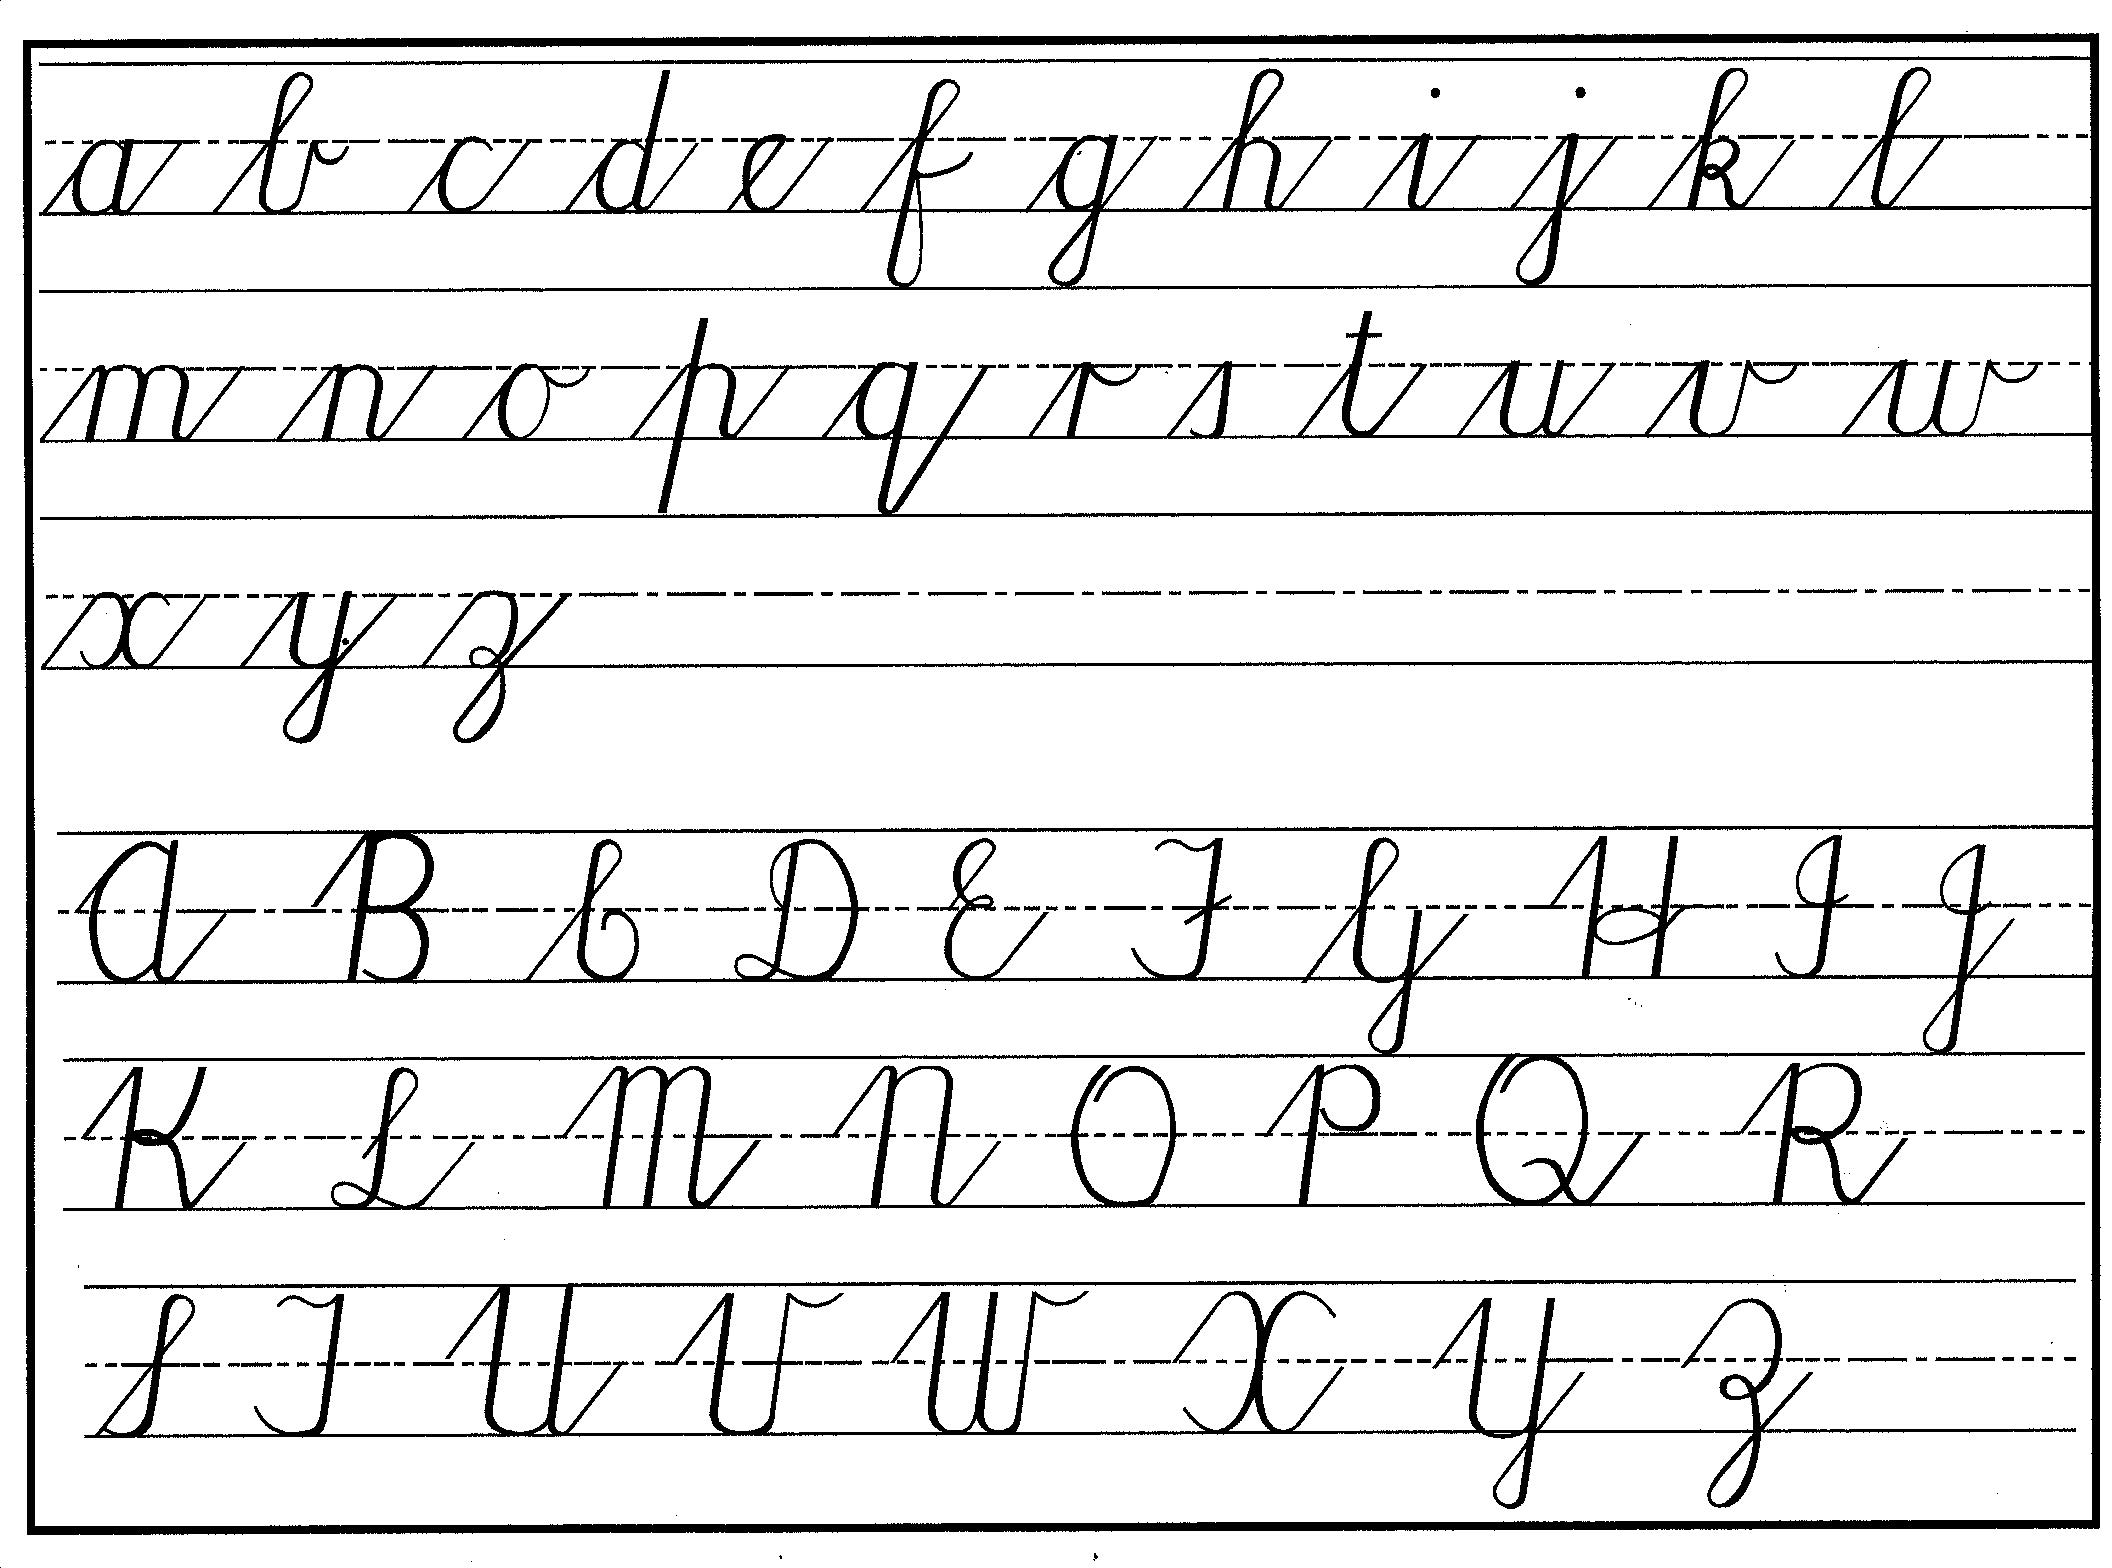 Worksheet How To Write Letters In Cursive cursive handwriting step by for beginners practical pages we use laminated charts instead of books or programs